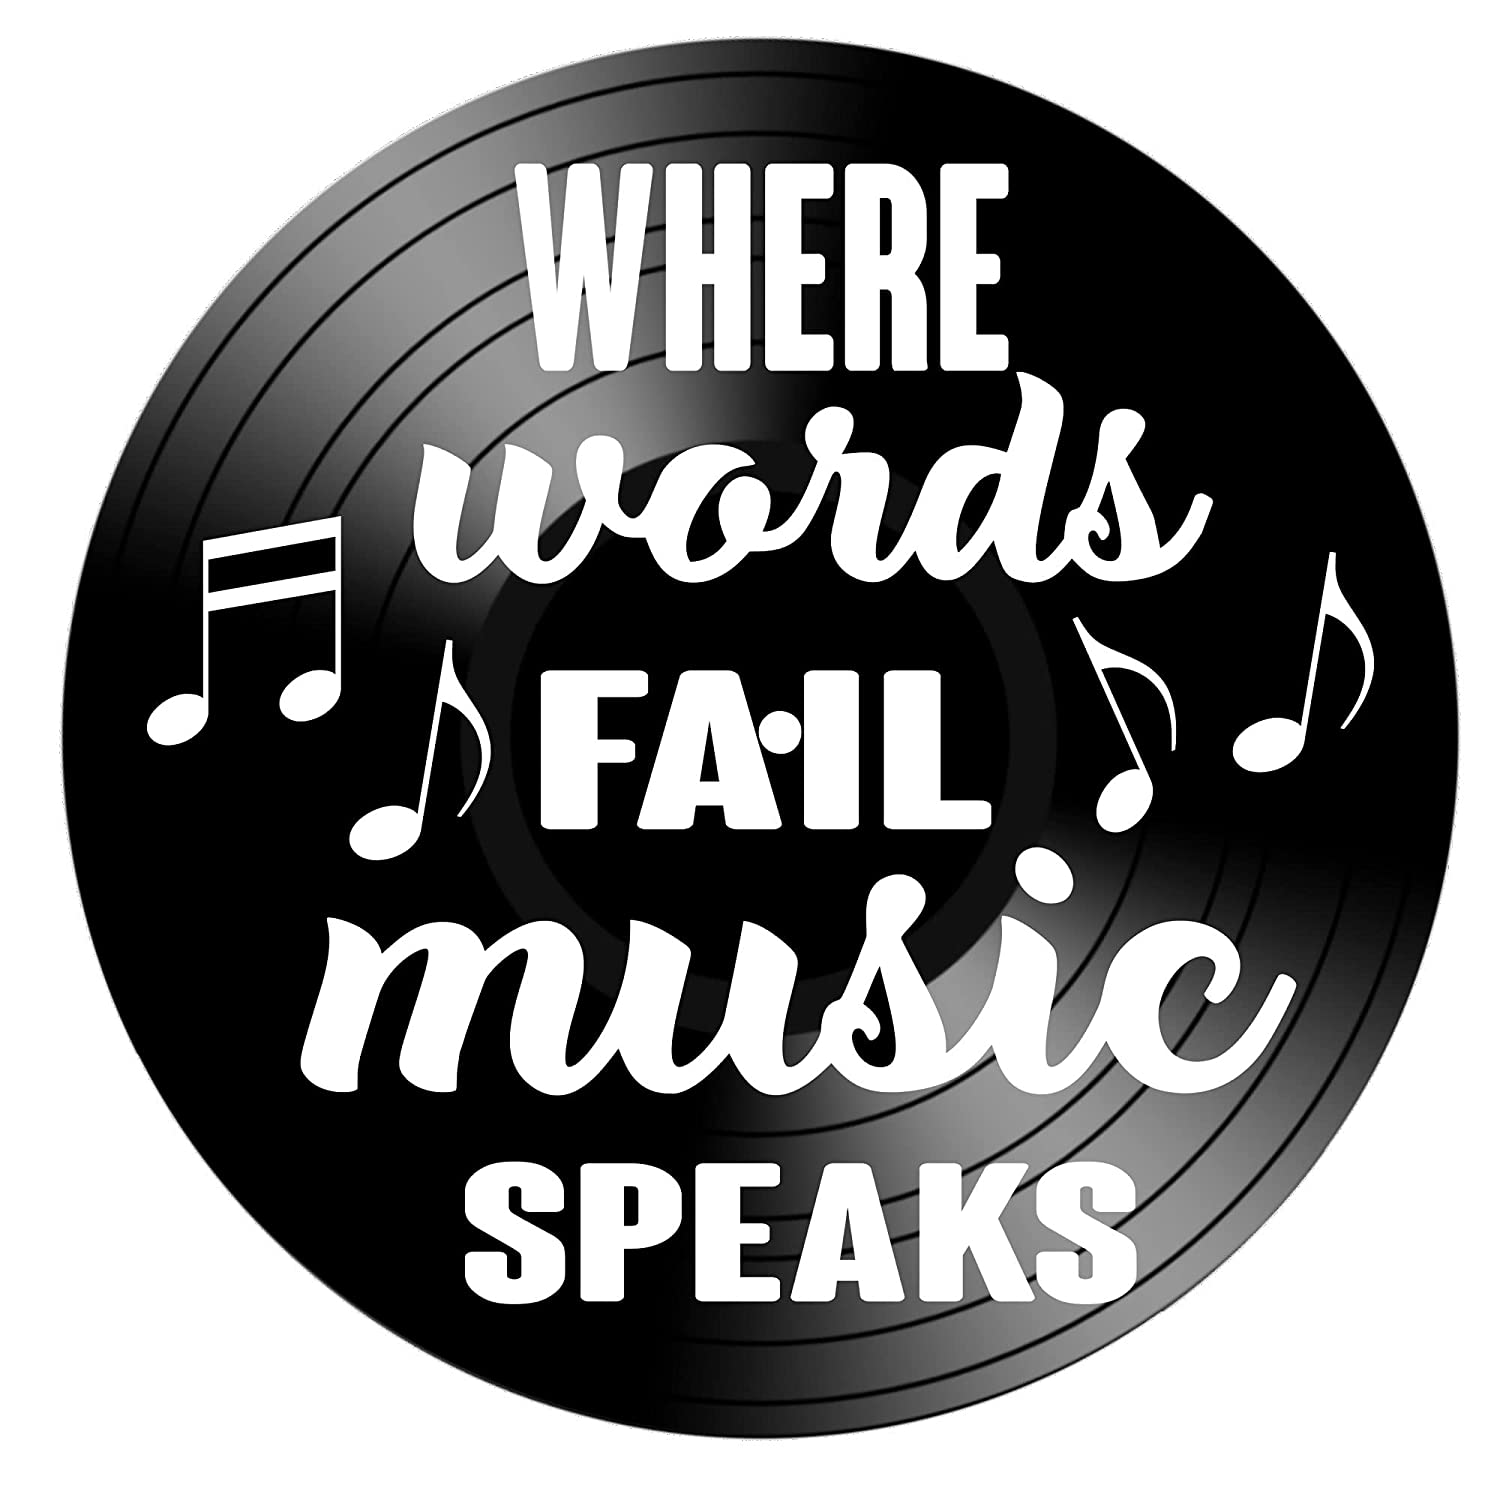 Where Words Fail Music New item Speaks Tucson Mall quote Upcycle Real a on Repurposed